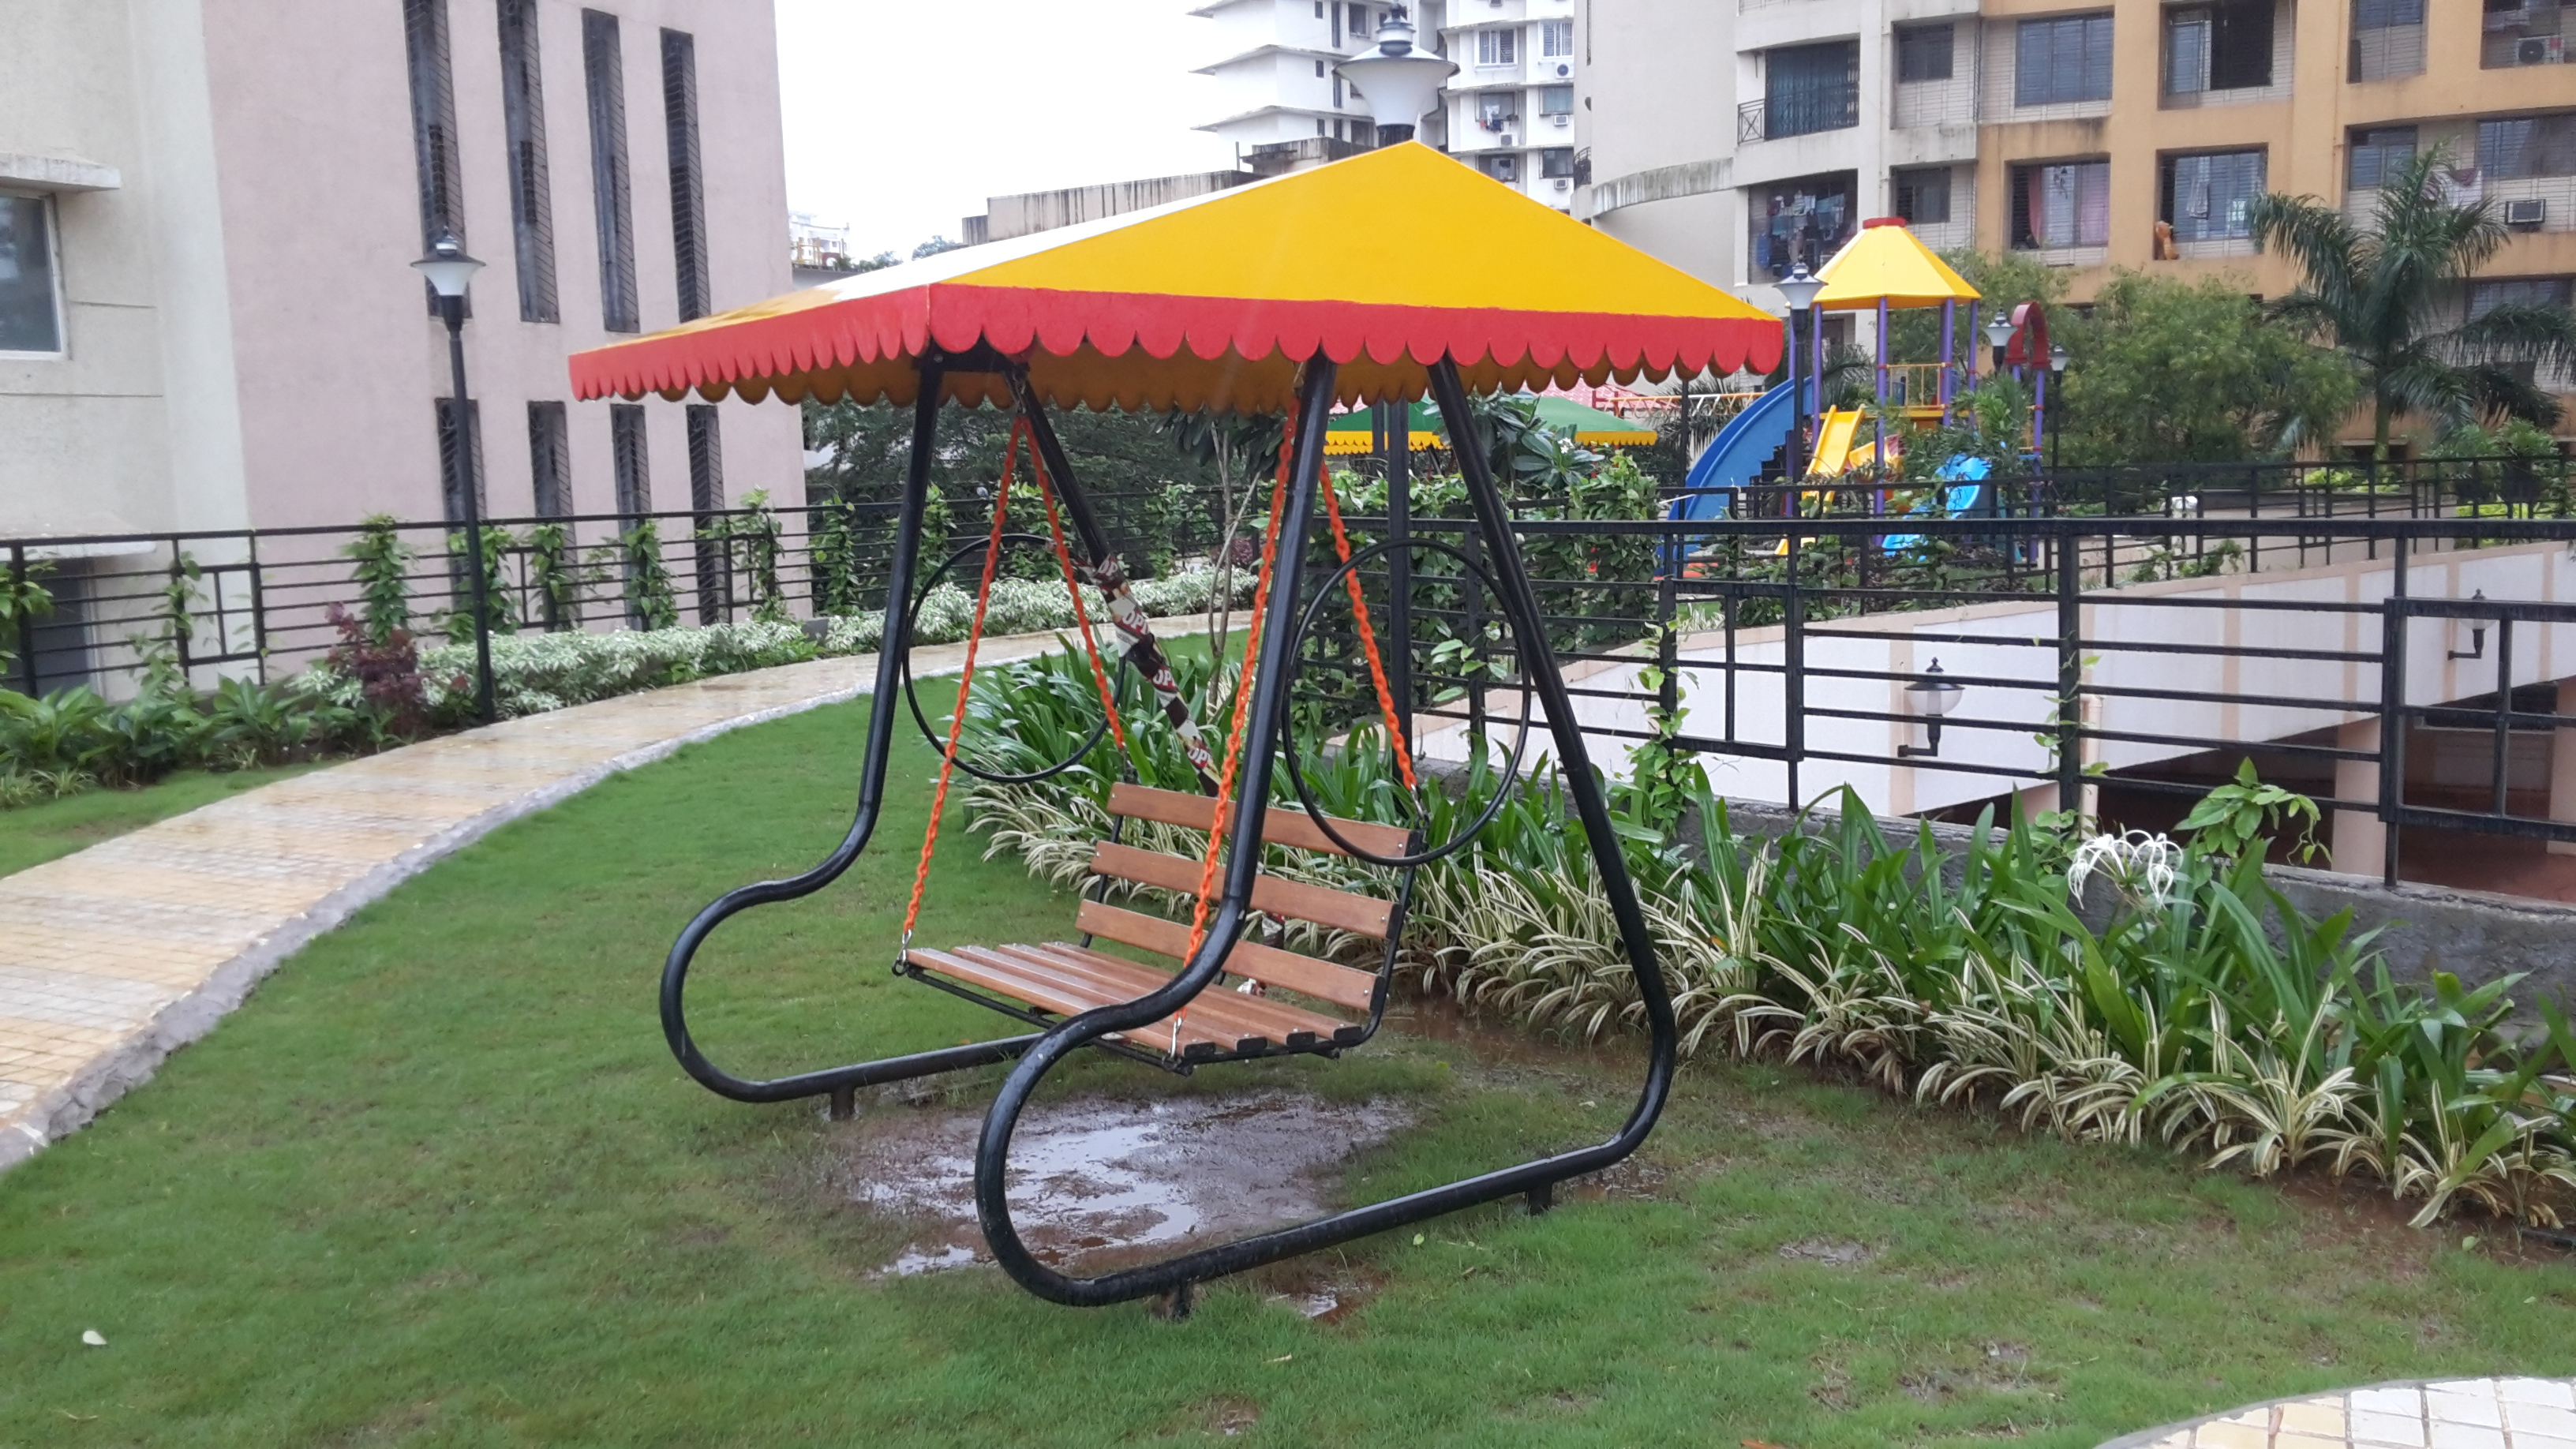 Royal Play Equipment is the Best Adult Slide Manufacturer in Mumbai. We are one of the prominent manufacturers, suppliers and wholesalers of a wide range of vivacious and vivid kinds of Playground Items and Garden Decorating Stuff.   In this range, we have a wide variety of games and slides for kids.  Established in the year 2007, we Royal Play Equipments are emerging as a consistent and developing business entity engaged in the manufacturing, supplying and wholesaling of an extensive array of Playground Items and Garden Decorating Stuff. We are one of the leading manufacturers of this quality range that has been constructed out of fiber glass, resin & mat and other safe and reliable material. That material that we have used has been procured by our associate vendors. In our range we have various kinds of educational toys and a wide variety of class room furniture. Amusement rides, Eco Park, Children play ground Equipments, Toddler play equipment, Theme Play Equipment, Park play equipments, Multi Play Equipments, Water Slides, Swings and See-Saw are some of the products that we are offering. We are also offering other similar products Baby Electric Toy Train, Garden Equipments, Play Stations, Indoor Play Equipments Designer Wooden furniture for kids, Garden benches, Swimming Pool, Kids Pool, Splash pool, Decorative items, Sculpture items and Fountains.  These items are widely used in places such as kindergartens, school, resorts, hotels, corporations, malls, colony parks, exhibitions and water parks. Our range is so fascinating and vivacious that it wins hearts instantly. It has been widely appreciated by major architects, interior designers, real estate developers and contractors who have credited this range to be conventional and easy to use or install. Customers can avail from us this range in a customized form as per the specifications they provide to us. We take contractual orders from schools and communities dealing in infrastructure decoration and availing ki